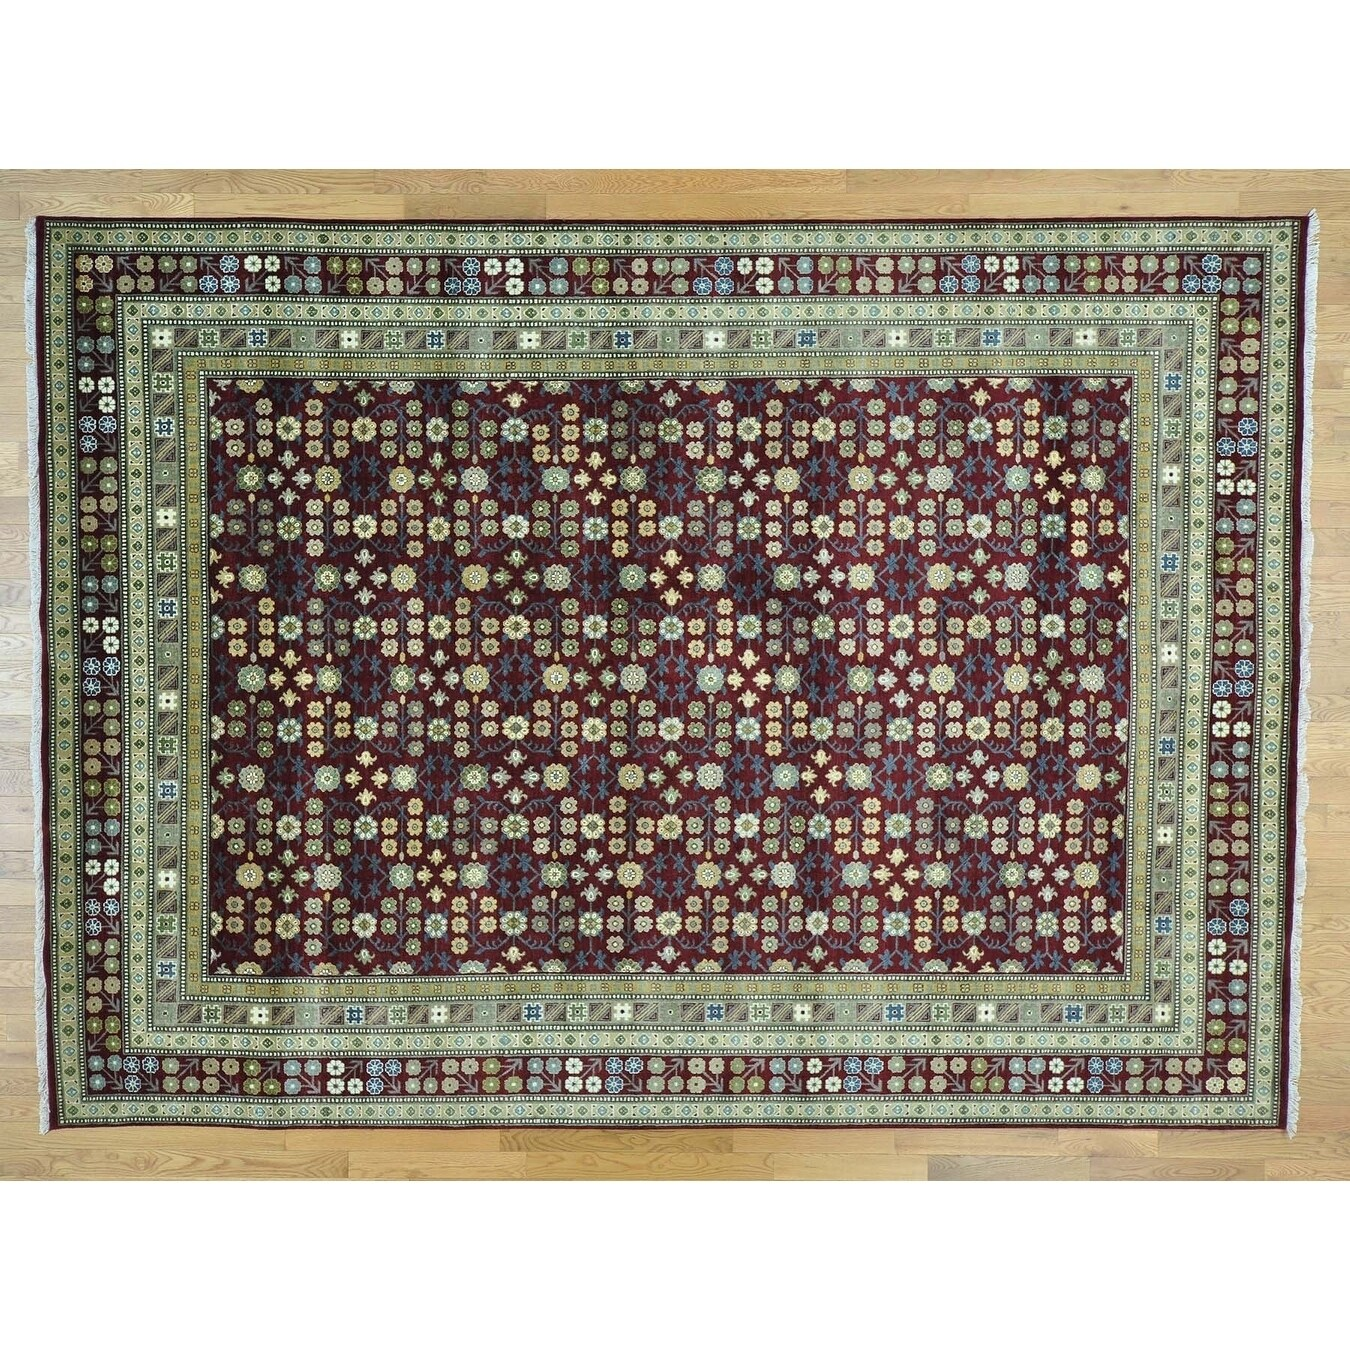 Hand Knotted Red Khotan and Samarkand with Wool Oriental Rug - 9 x 126